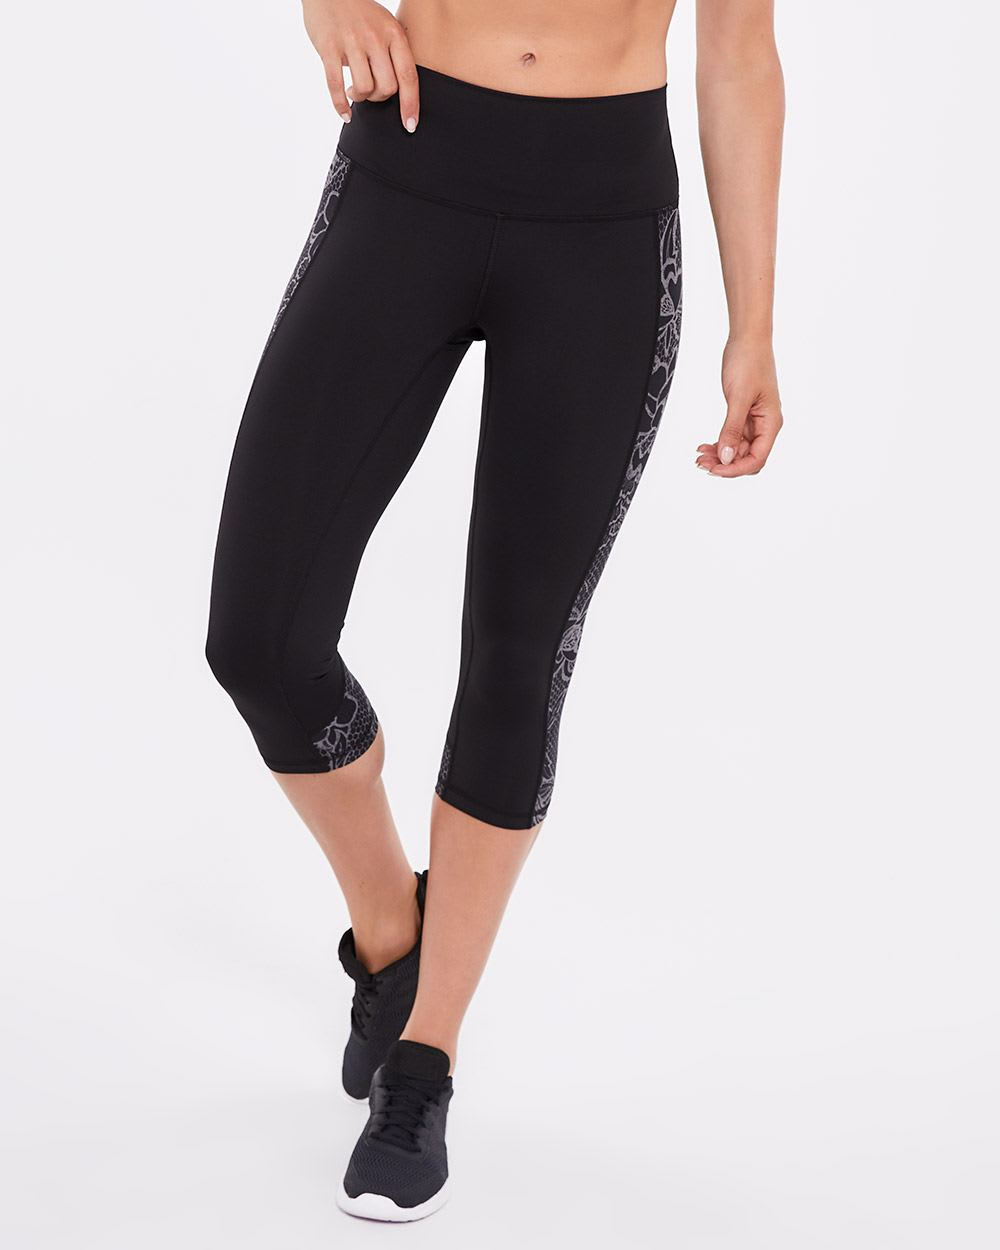 Hyba Capri Legging with Side Print